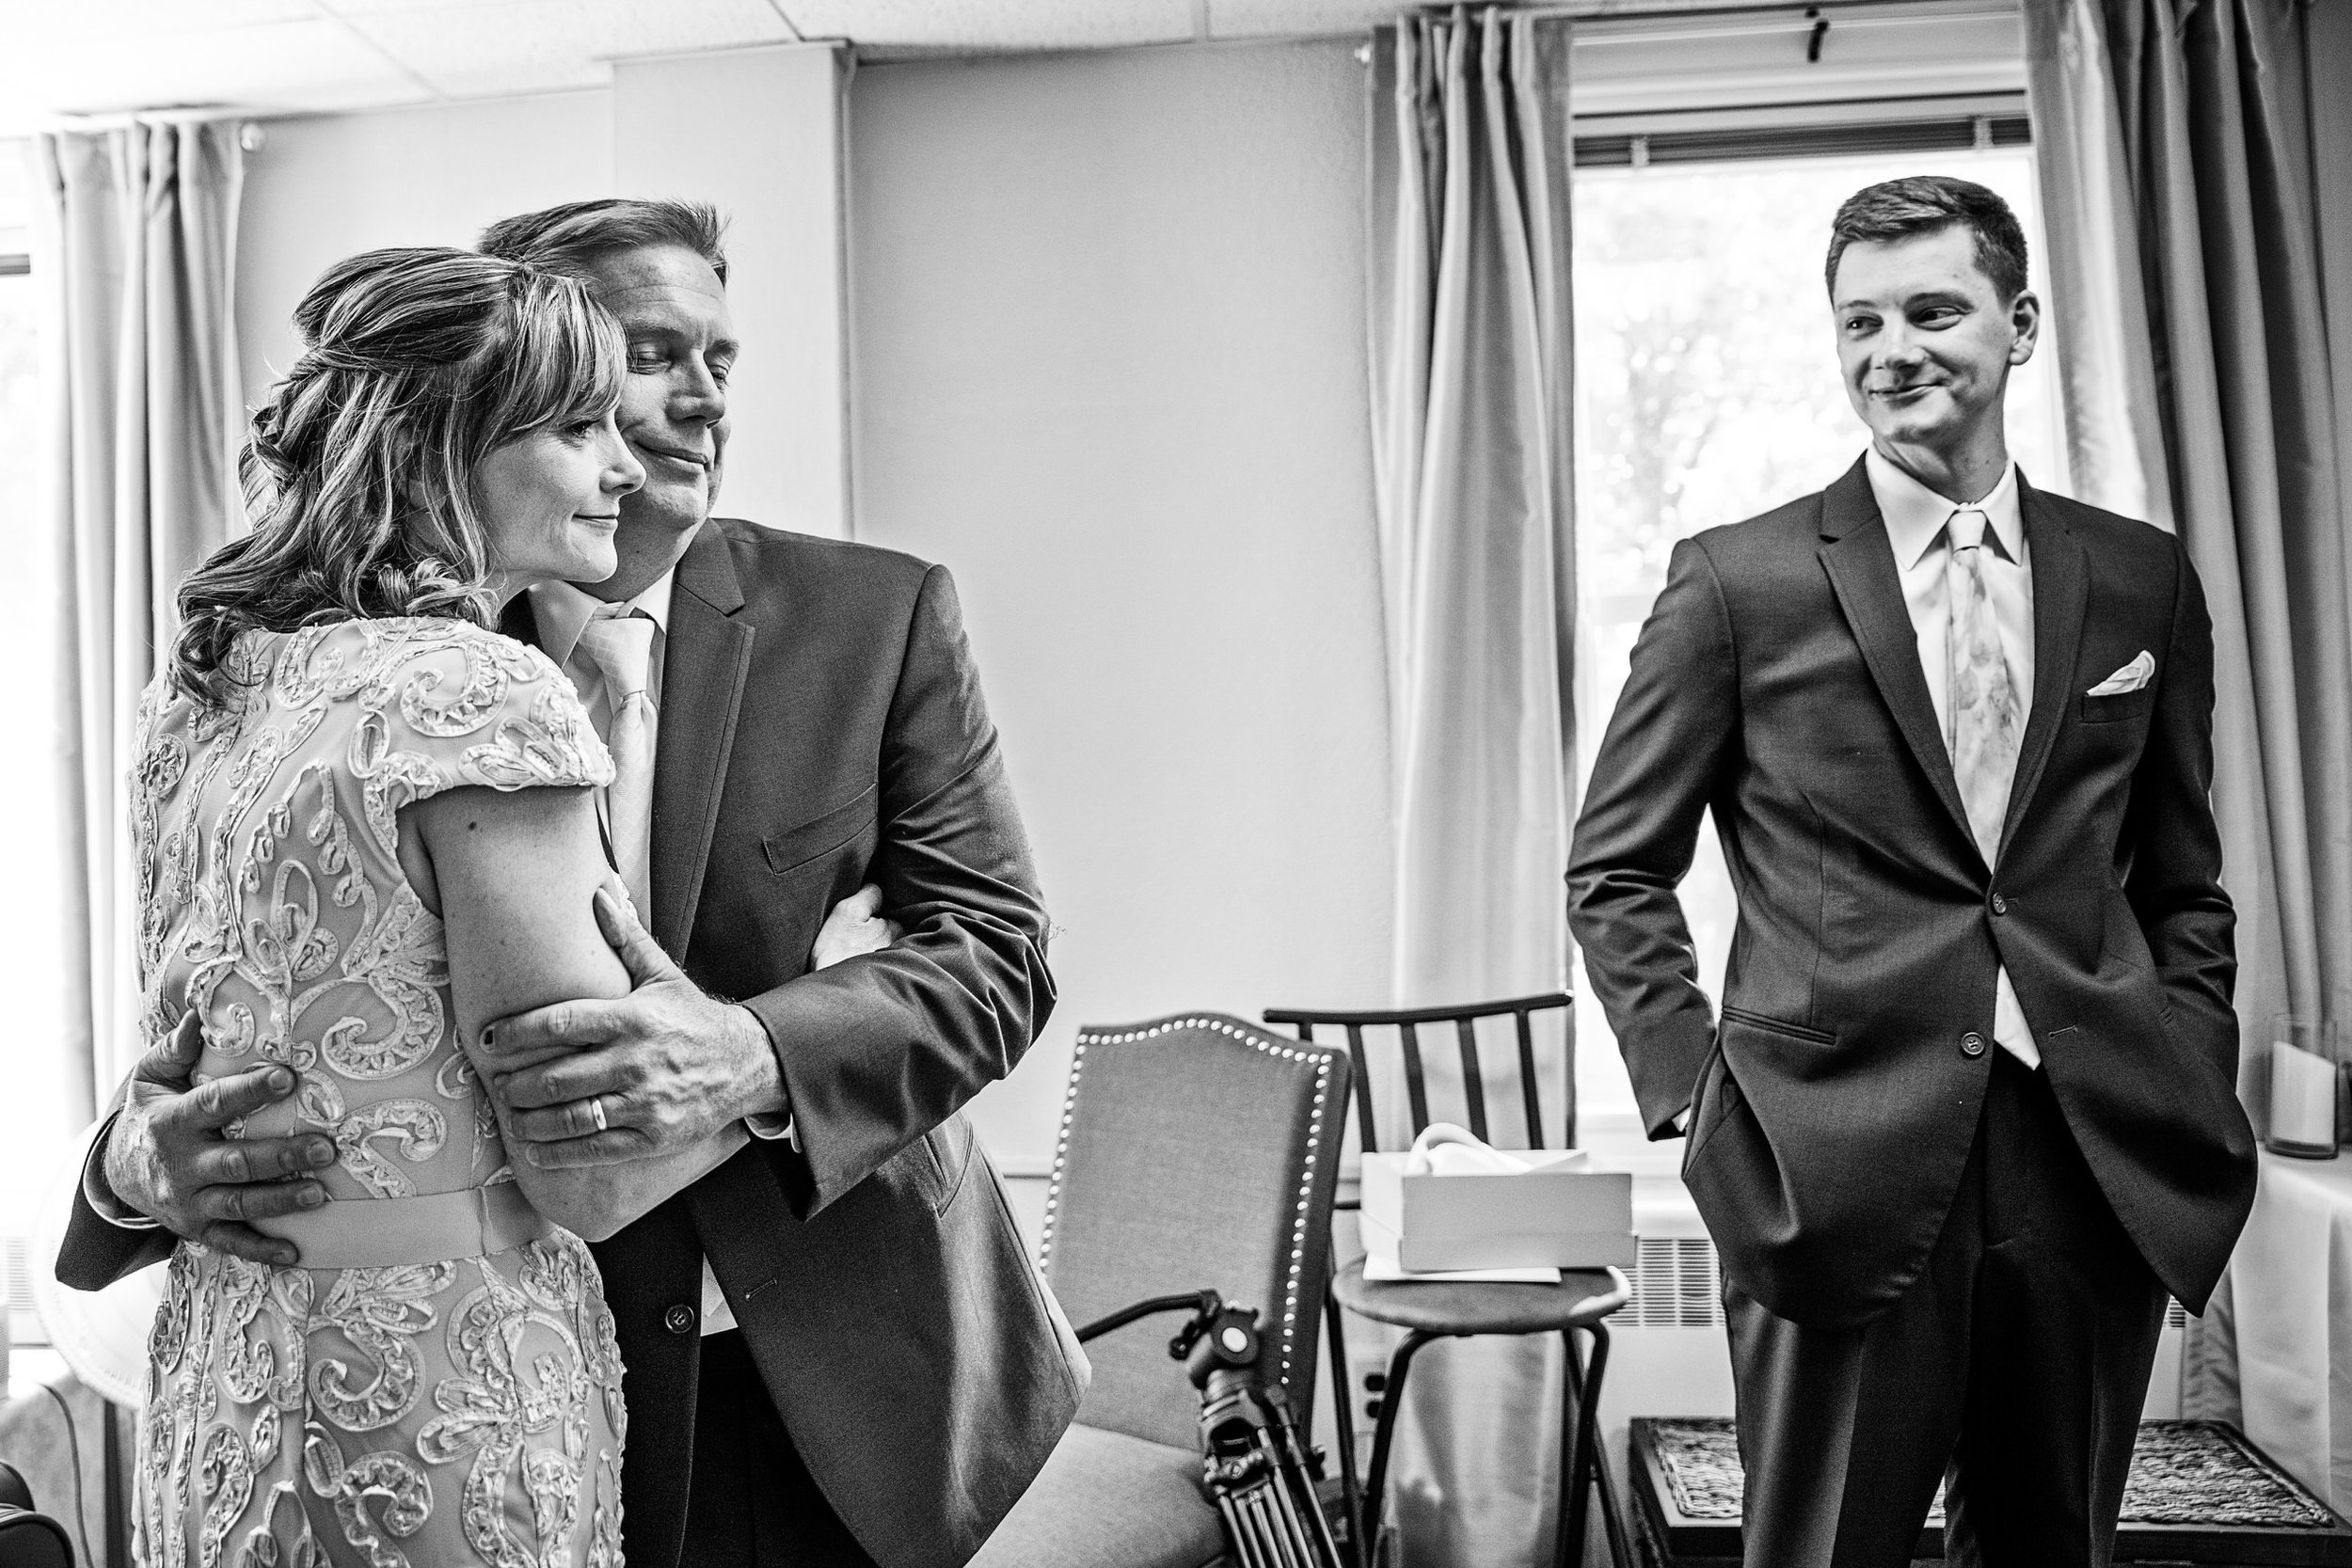 OverhillsManorWedding-Holly&David-GettingReady-301.jpg